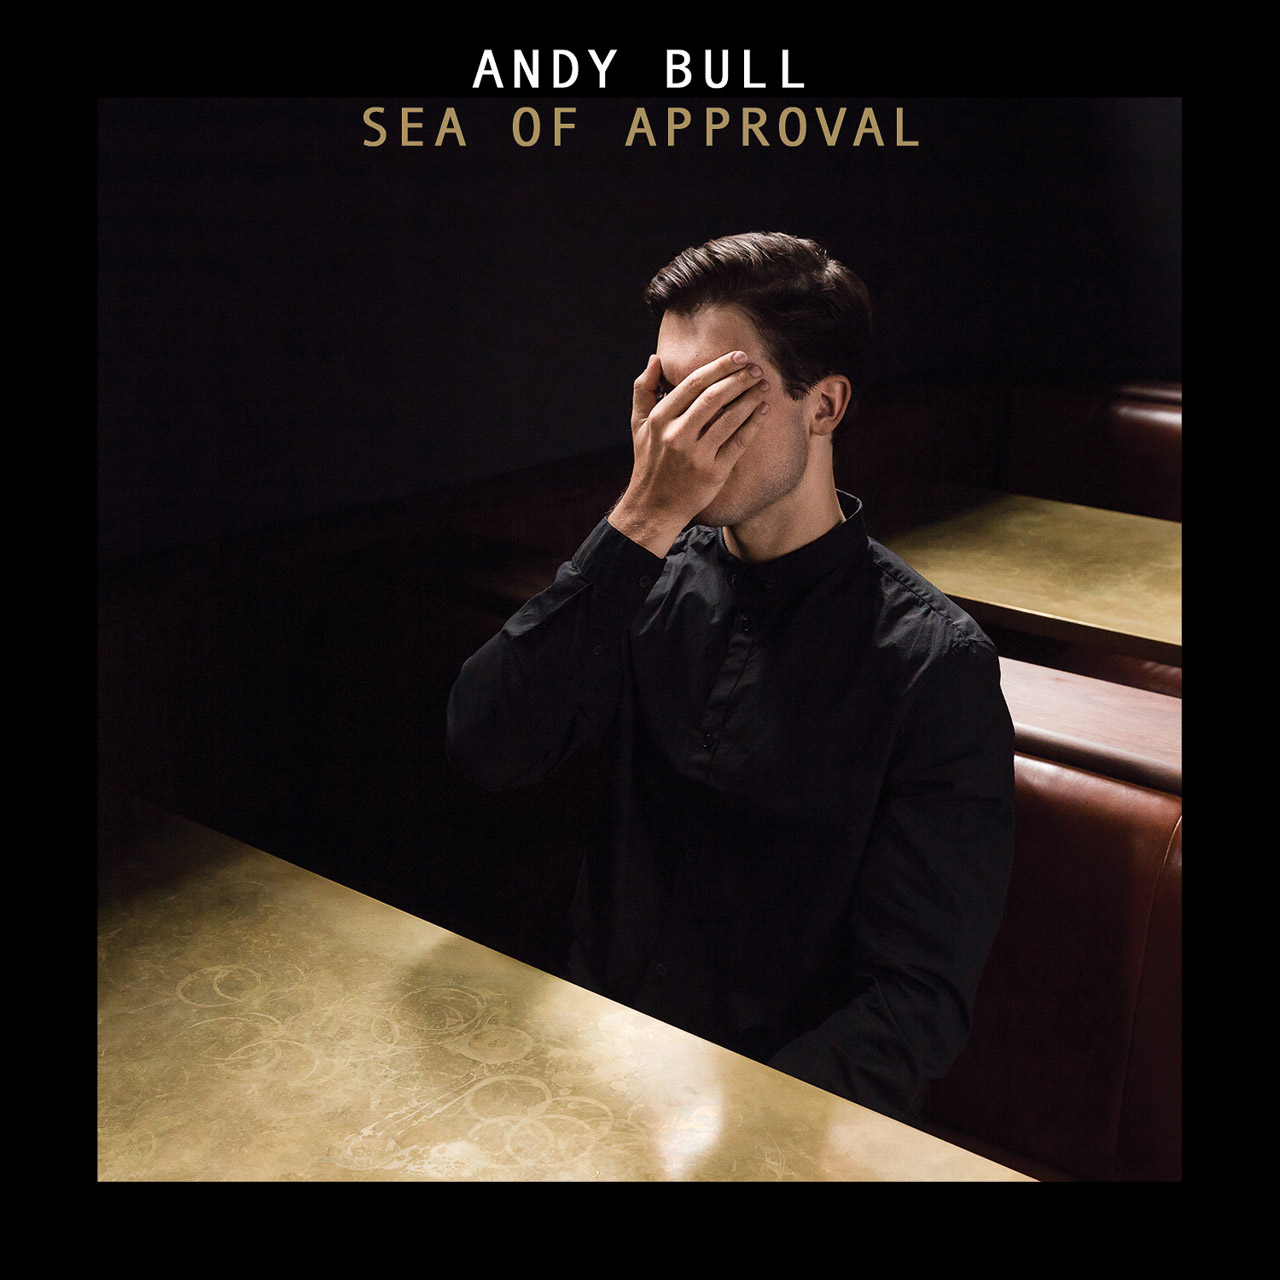 Andy Bull album cover